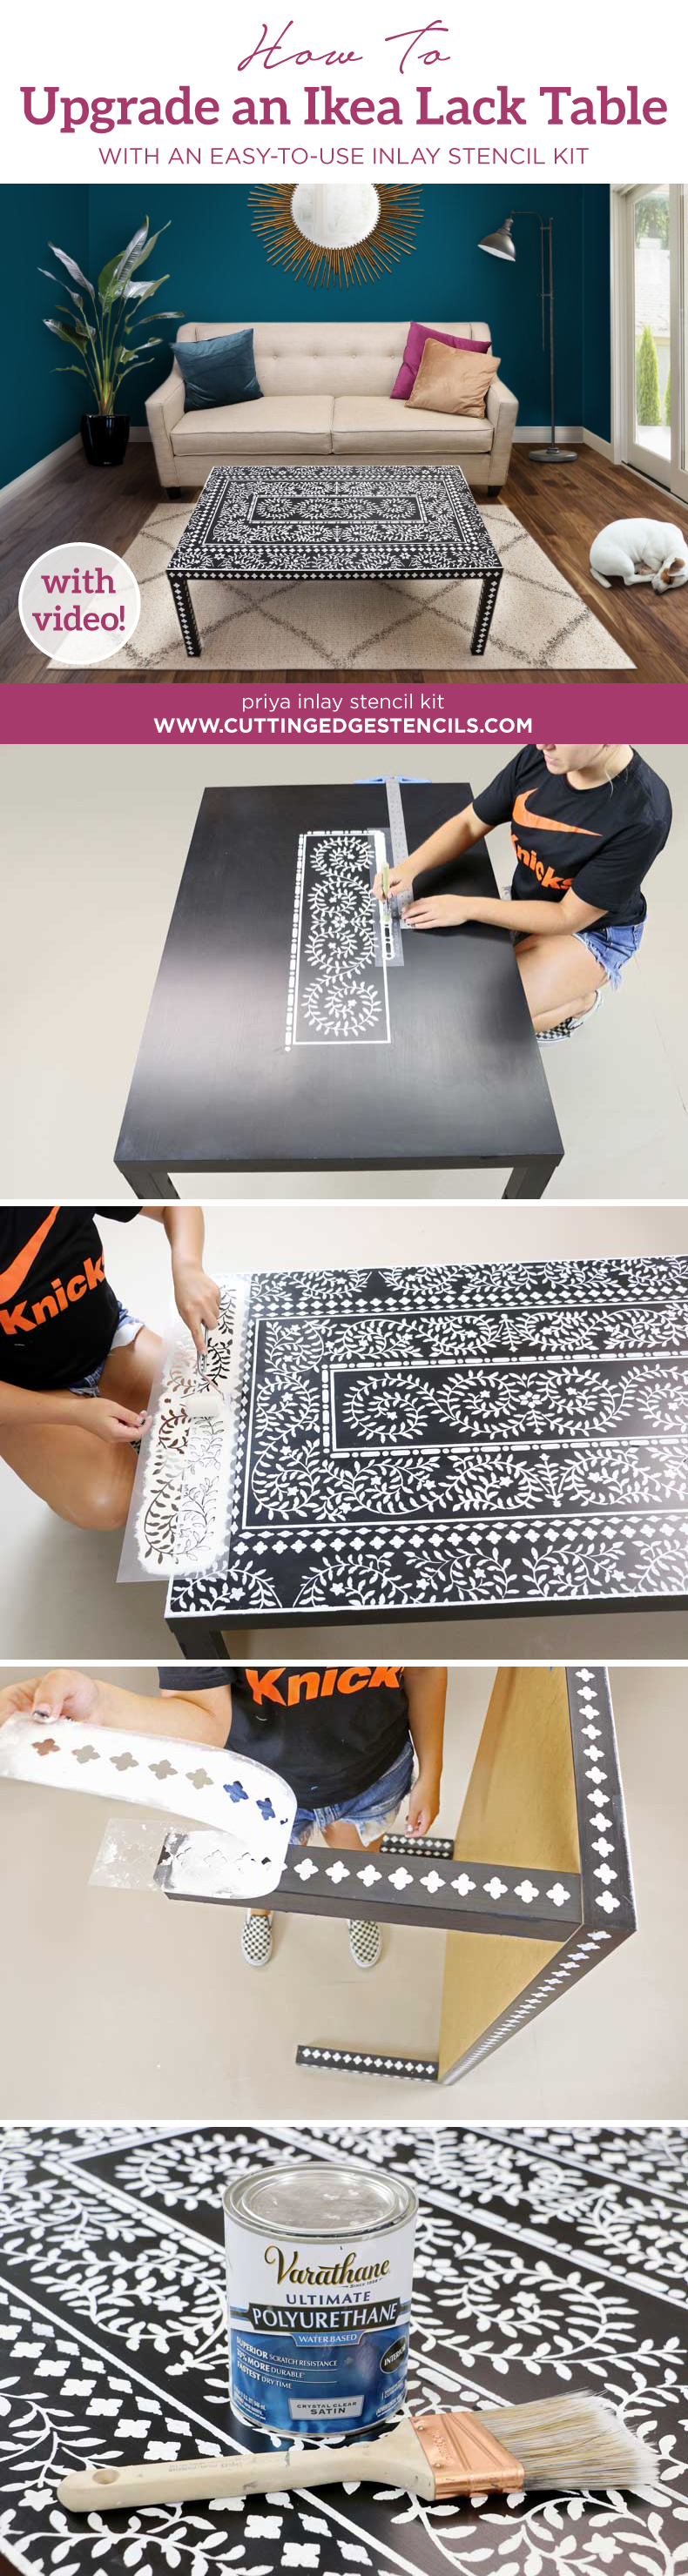 Ikea Lack Upgrade How To Upgrade An Ikea Lack Table With An Easy To Use Inlay Stencil